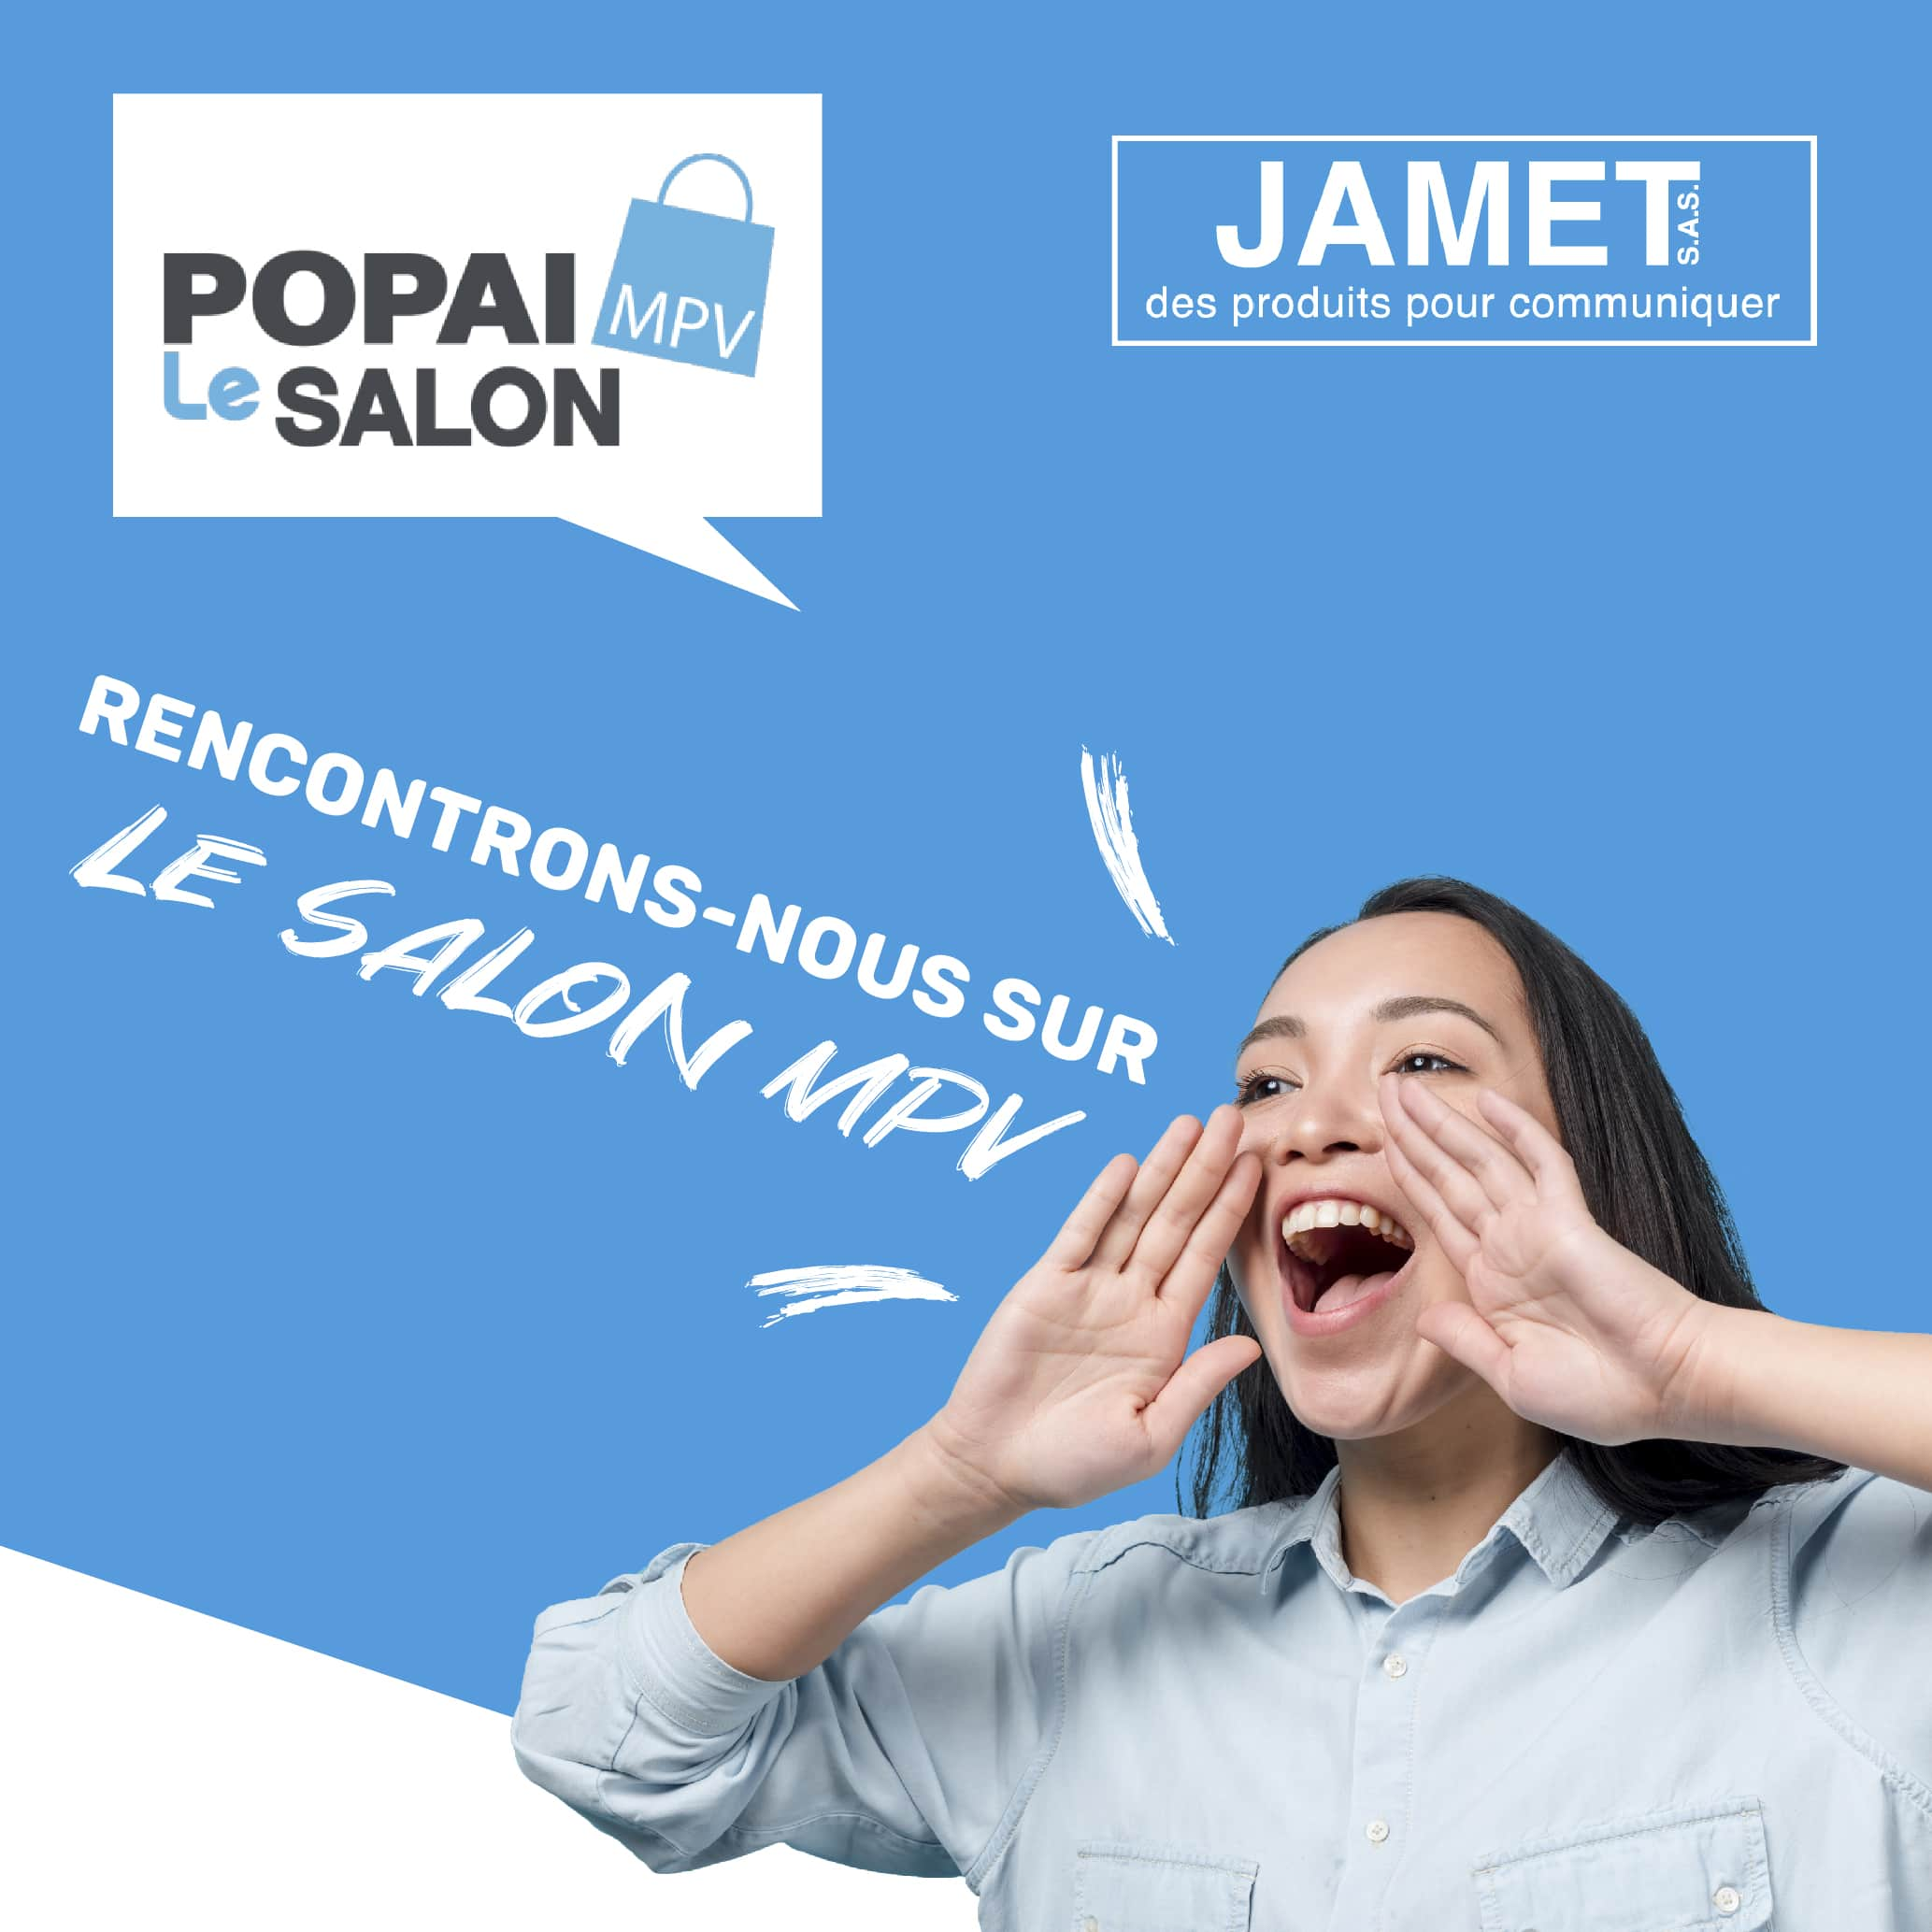 Salon Popai